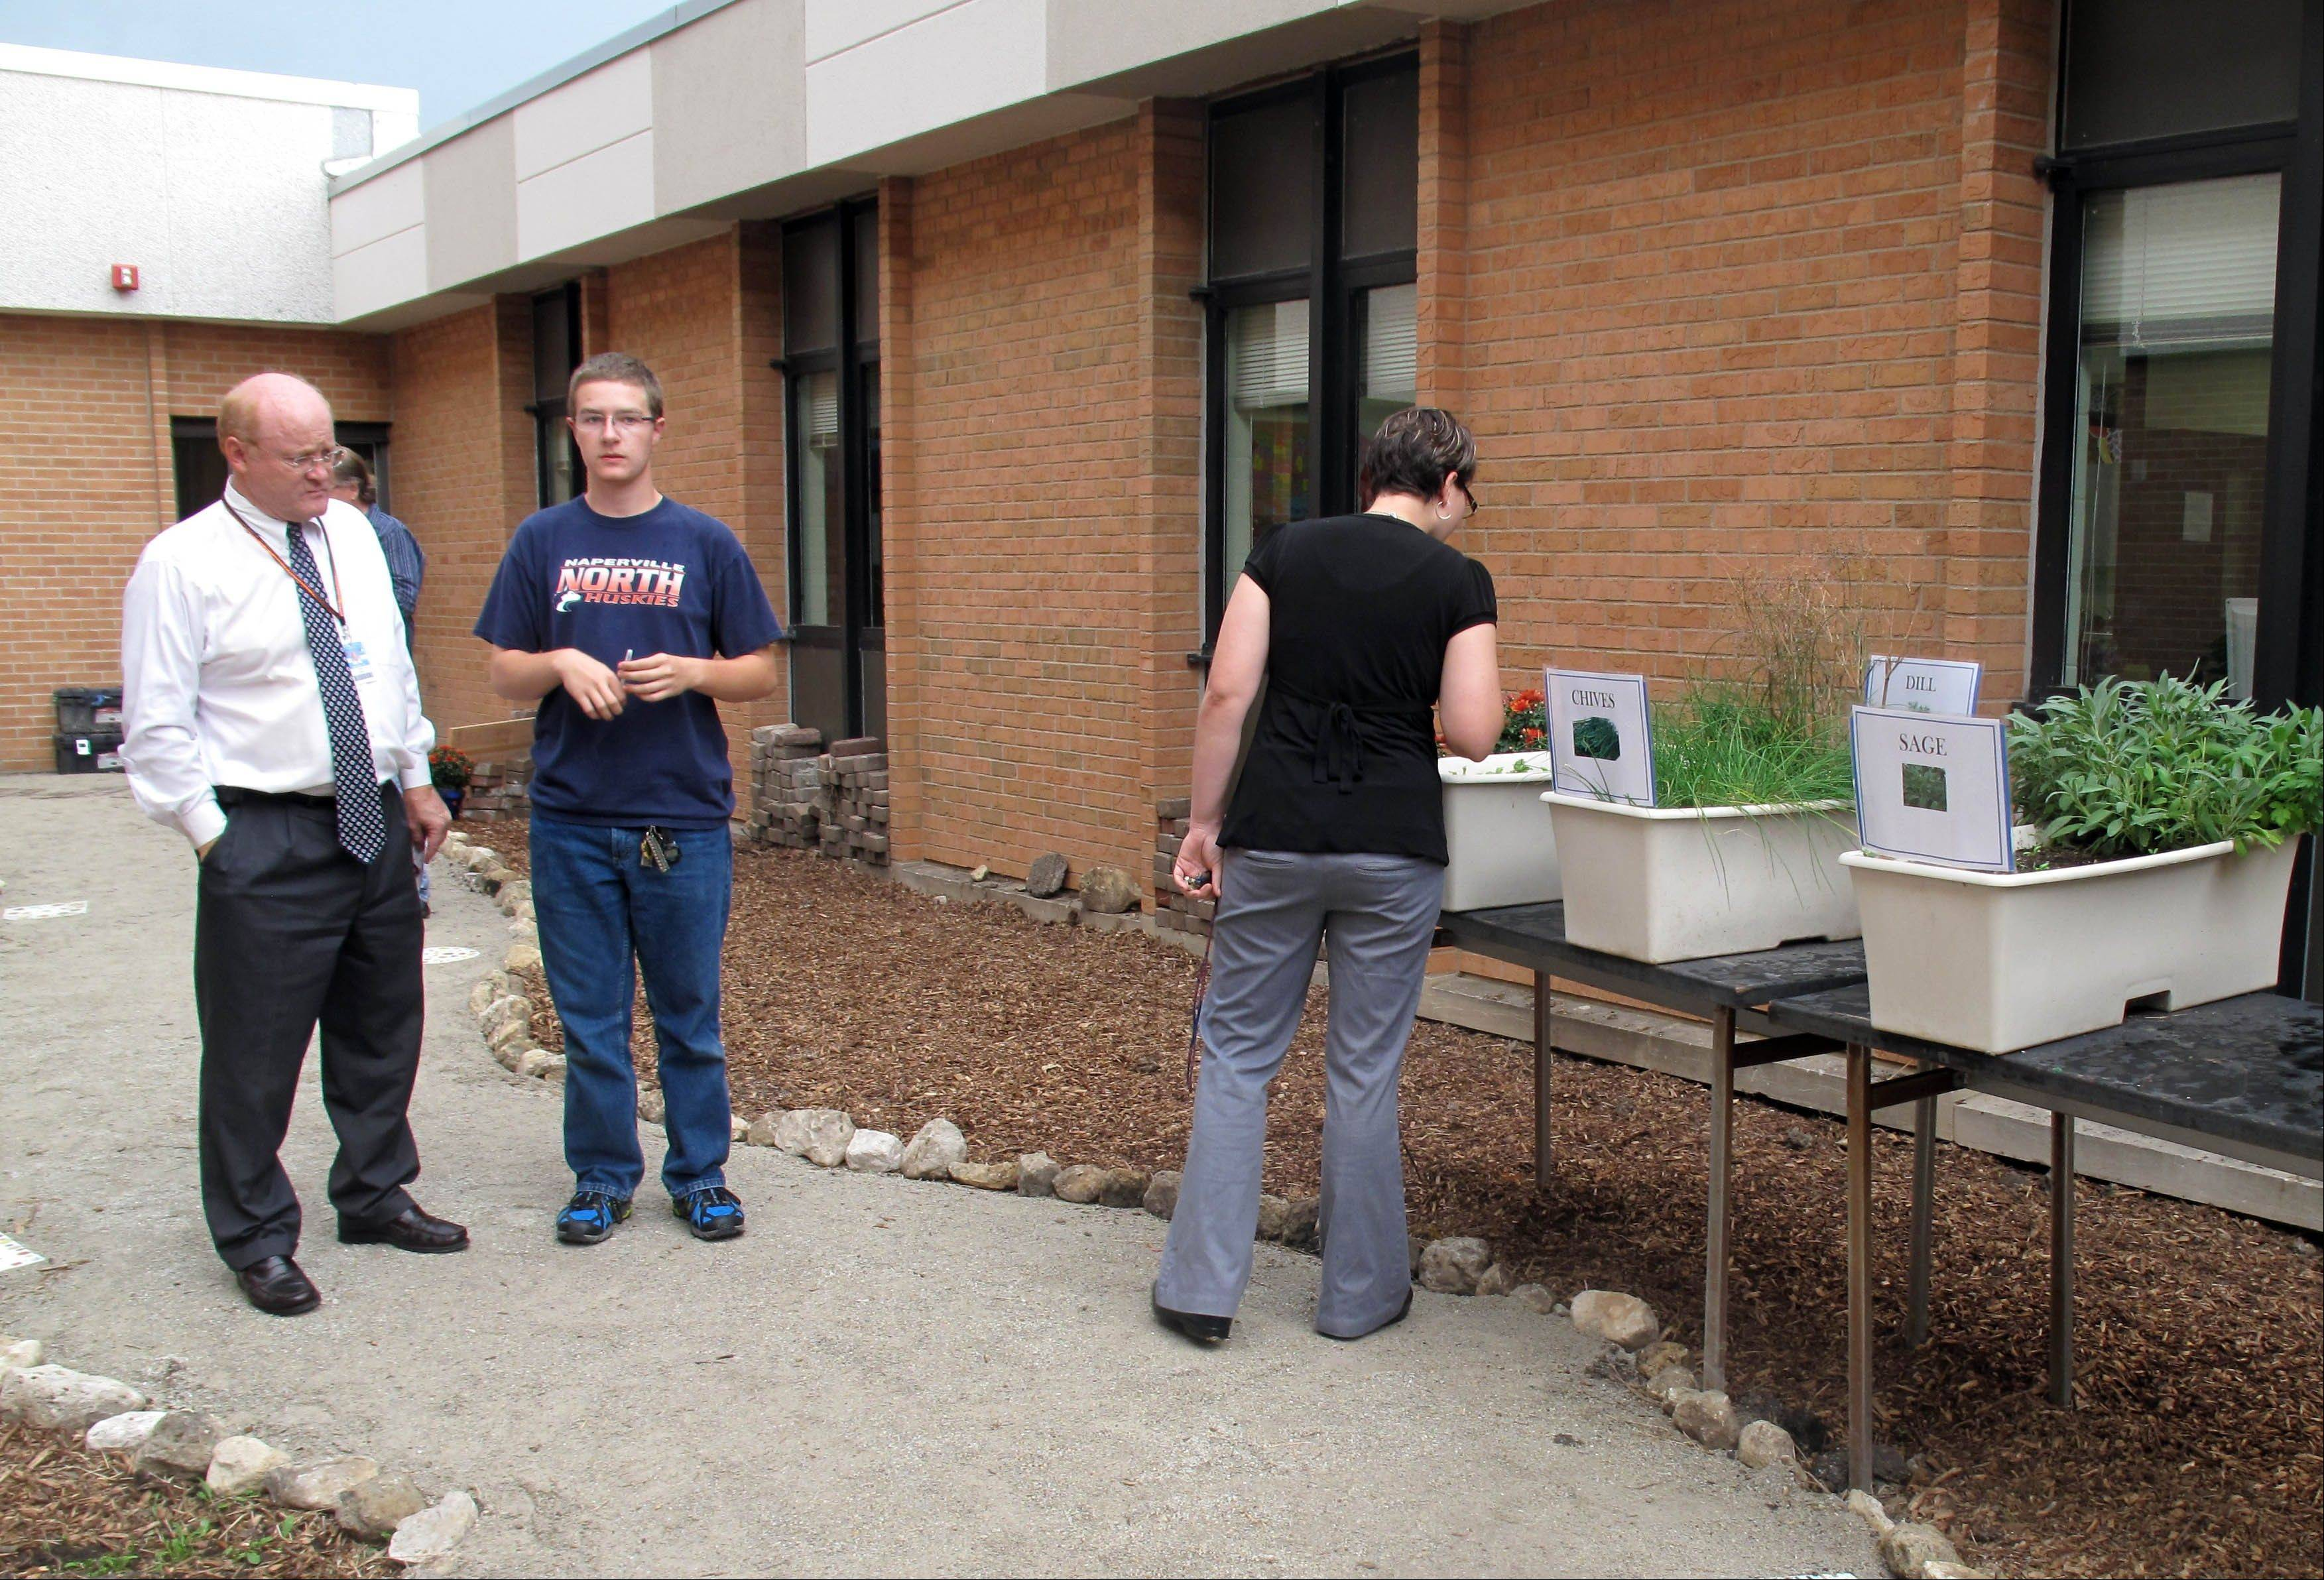 Naperville North senior and horticulture club member Jonathan Buettner talks with Principal Kevin Pobst during a harvest open house at the school's new courtyard garden. Buettner was among students who helped install a bed for herbs in the garden, which was created this spring.